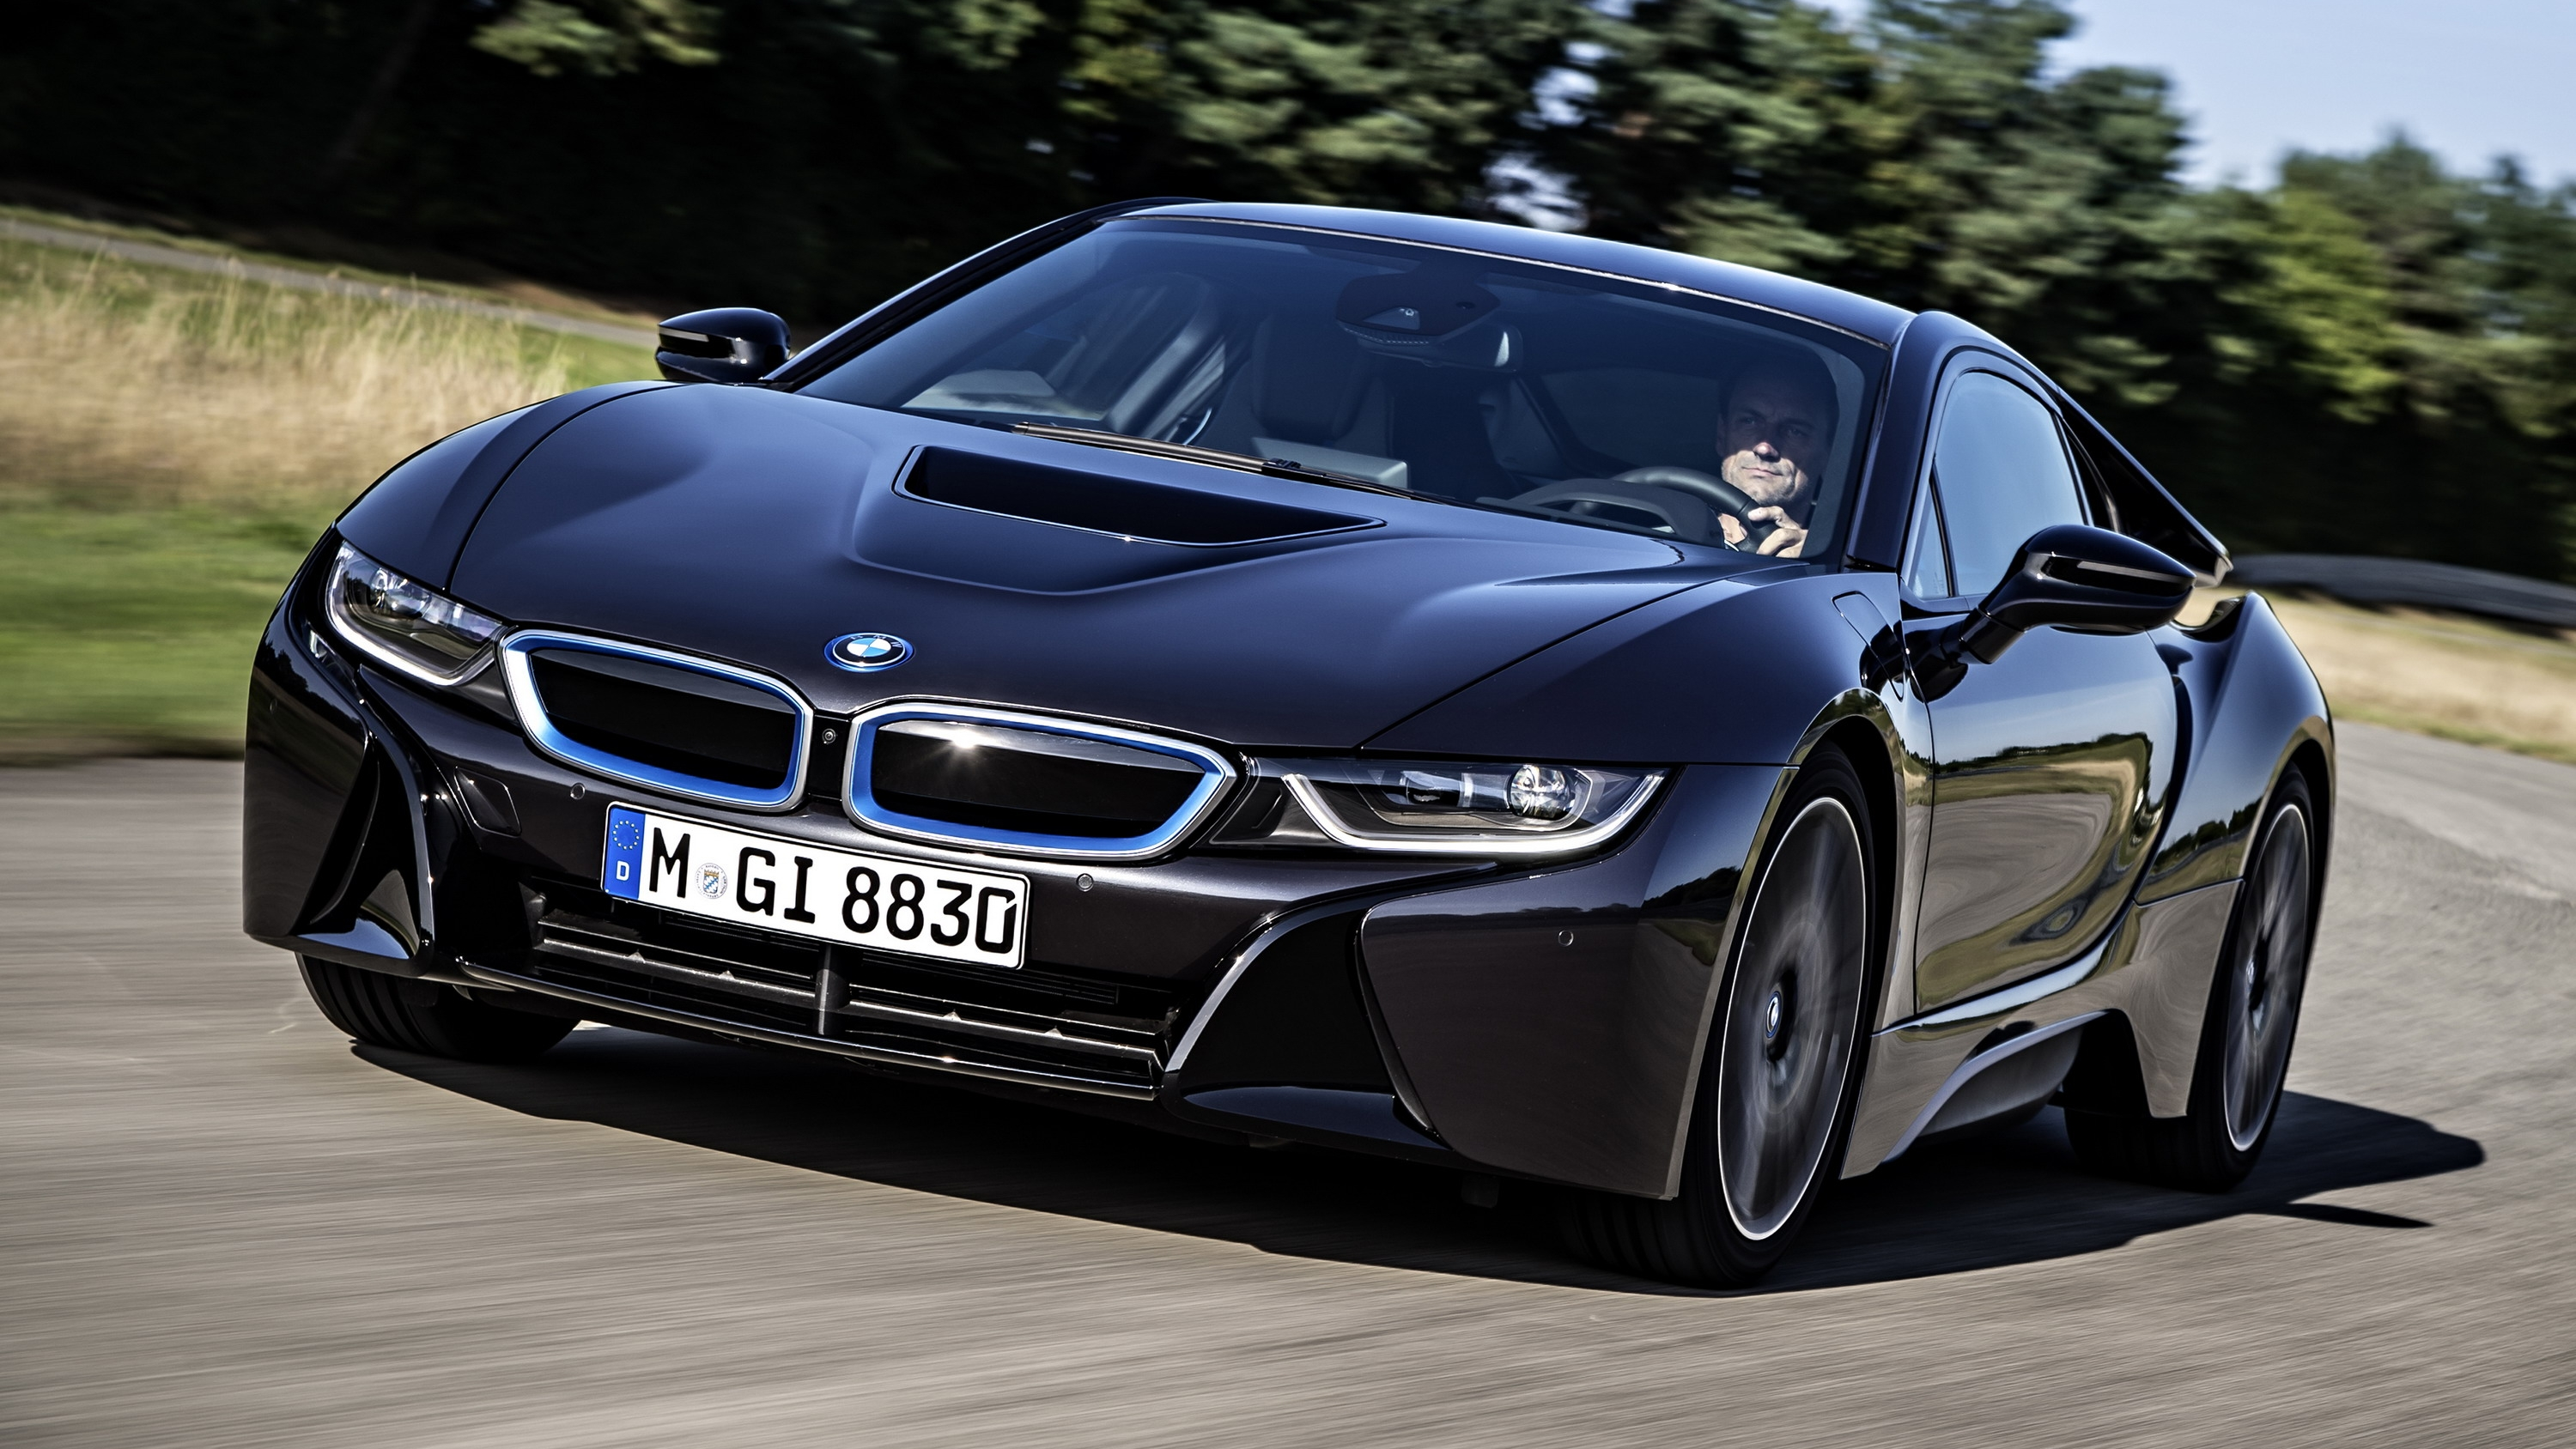 ... Up Average Emissions Numbers, BMW Is Looking To Transform Its Lineup  With A Sweeping Conversion To Electric Power Over The Course Of The Next 10  Years.